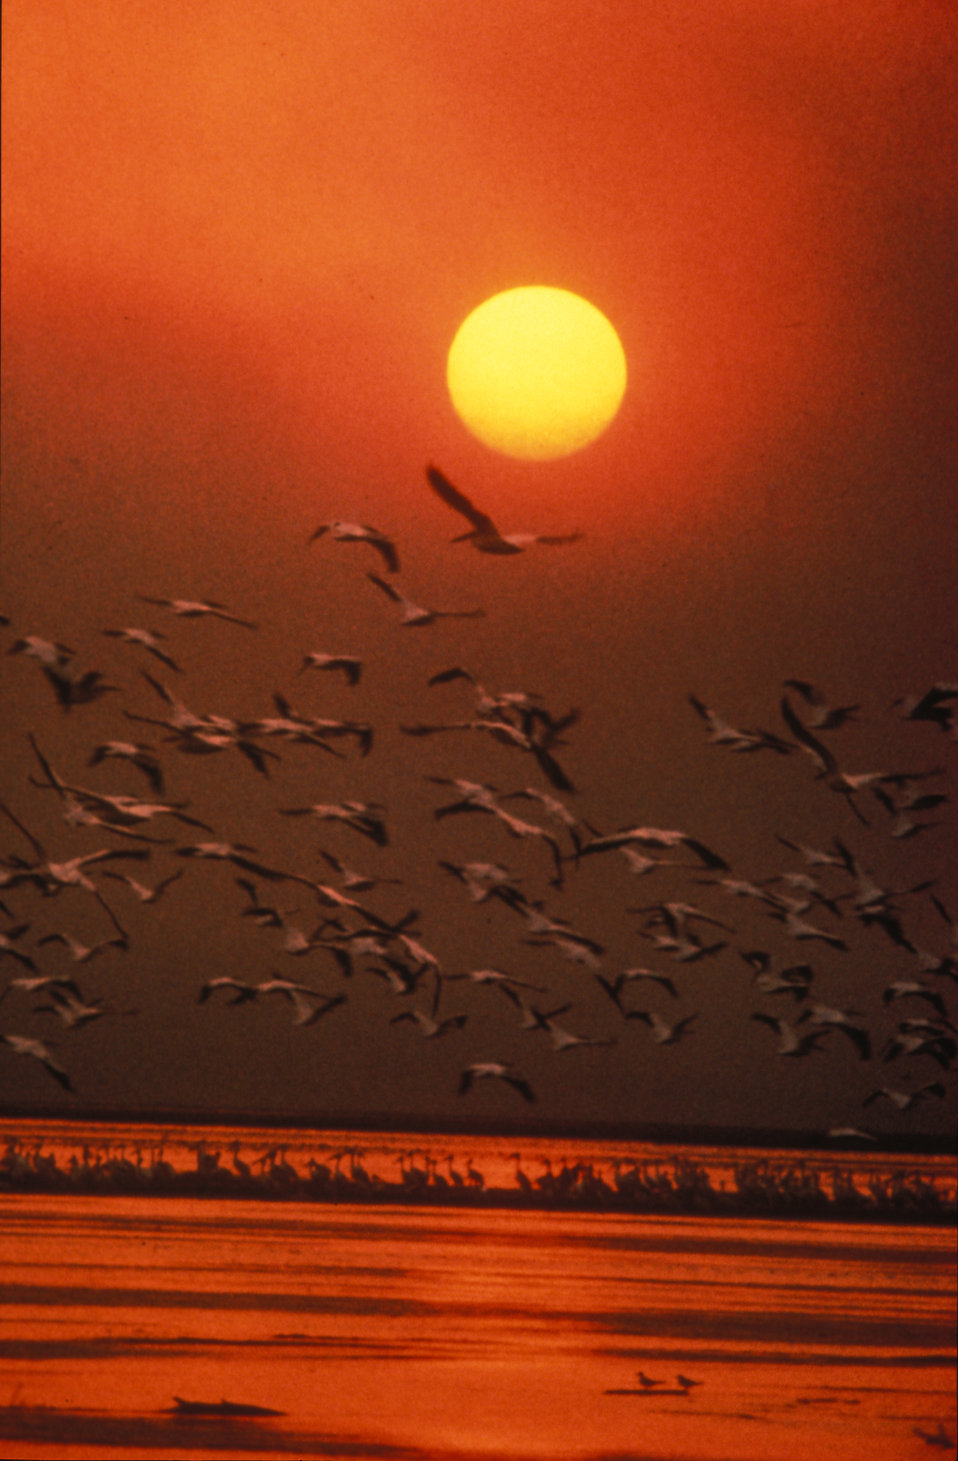 White pelicans flying over the ocean at sunset : Free Stock Photo